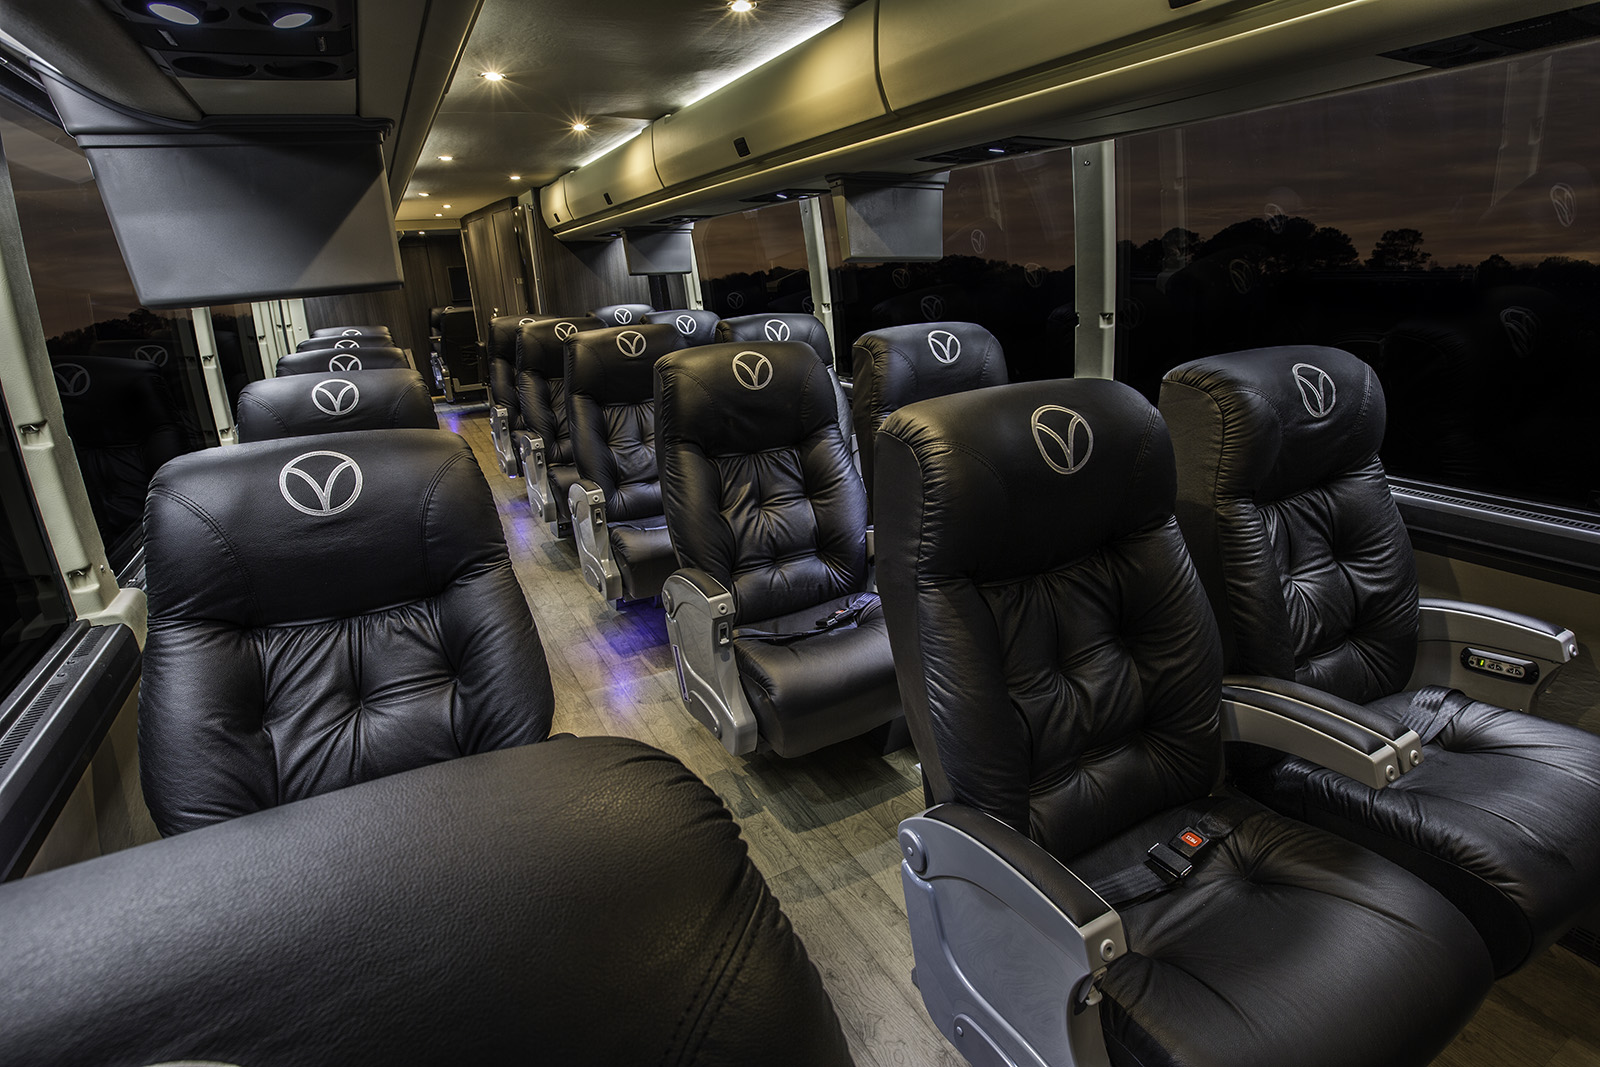 Aug 01, · My fiancee and I are traveling the greyhound from Arizona to Nevada (23 hour trip) with our 1 month old son (were actually moving there permanently). I will be carrying my son in a sling on the bus, but was wondering if I could put his carseat under the bus as checked smolinwebsite.ga: Resolved.